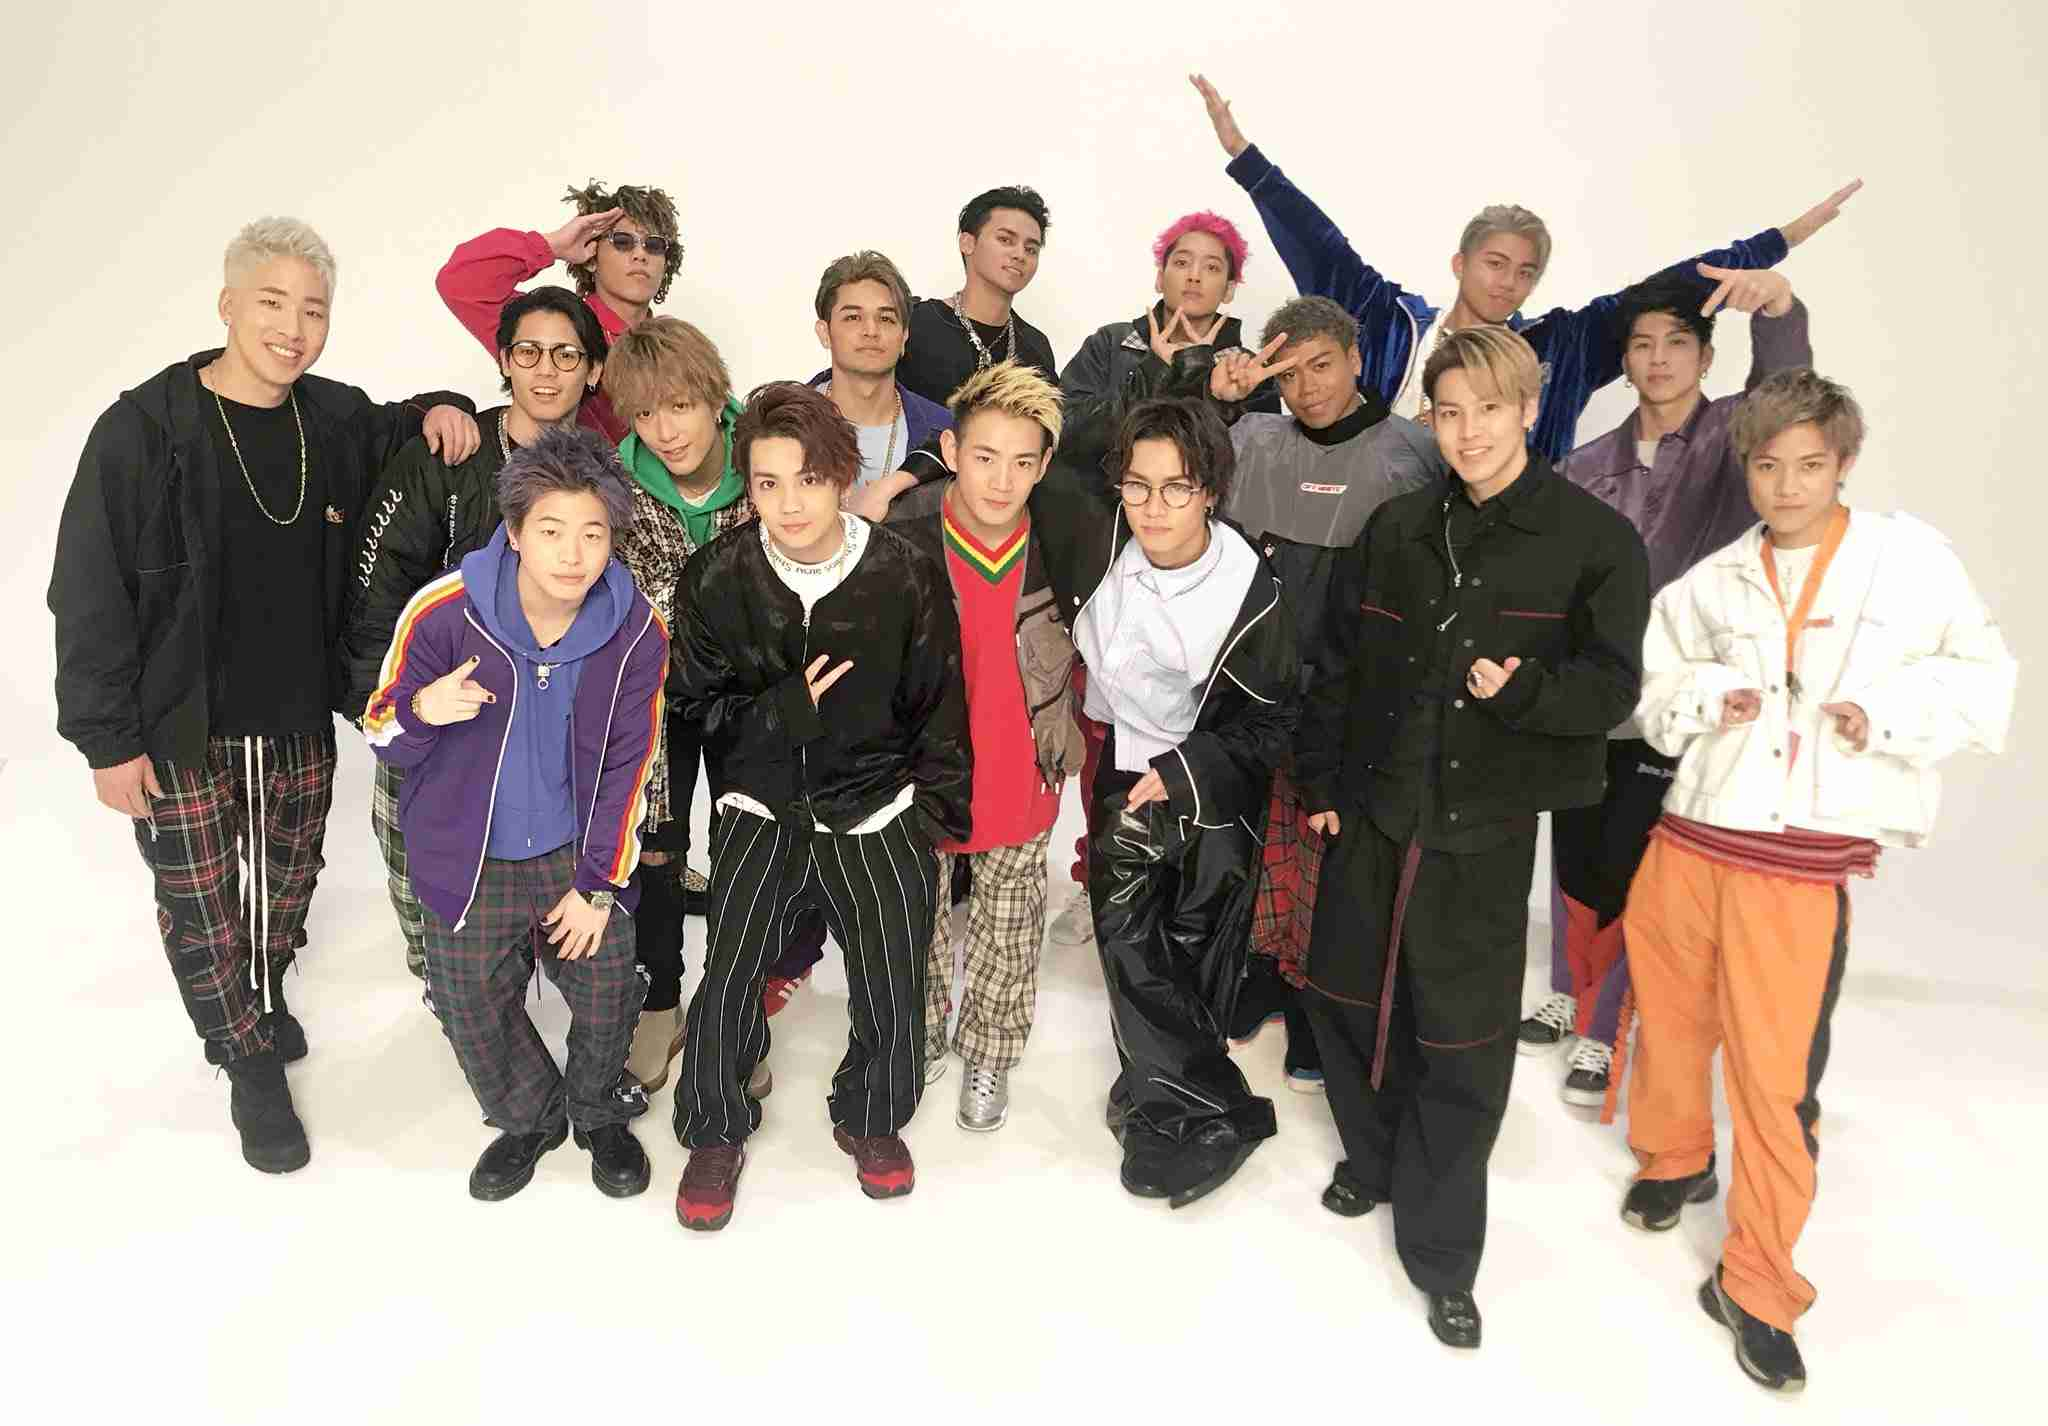 EXILE TRIBEが好きな人!